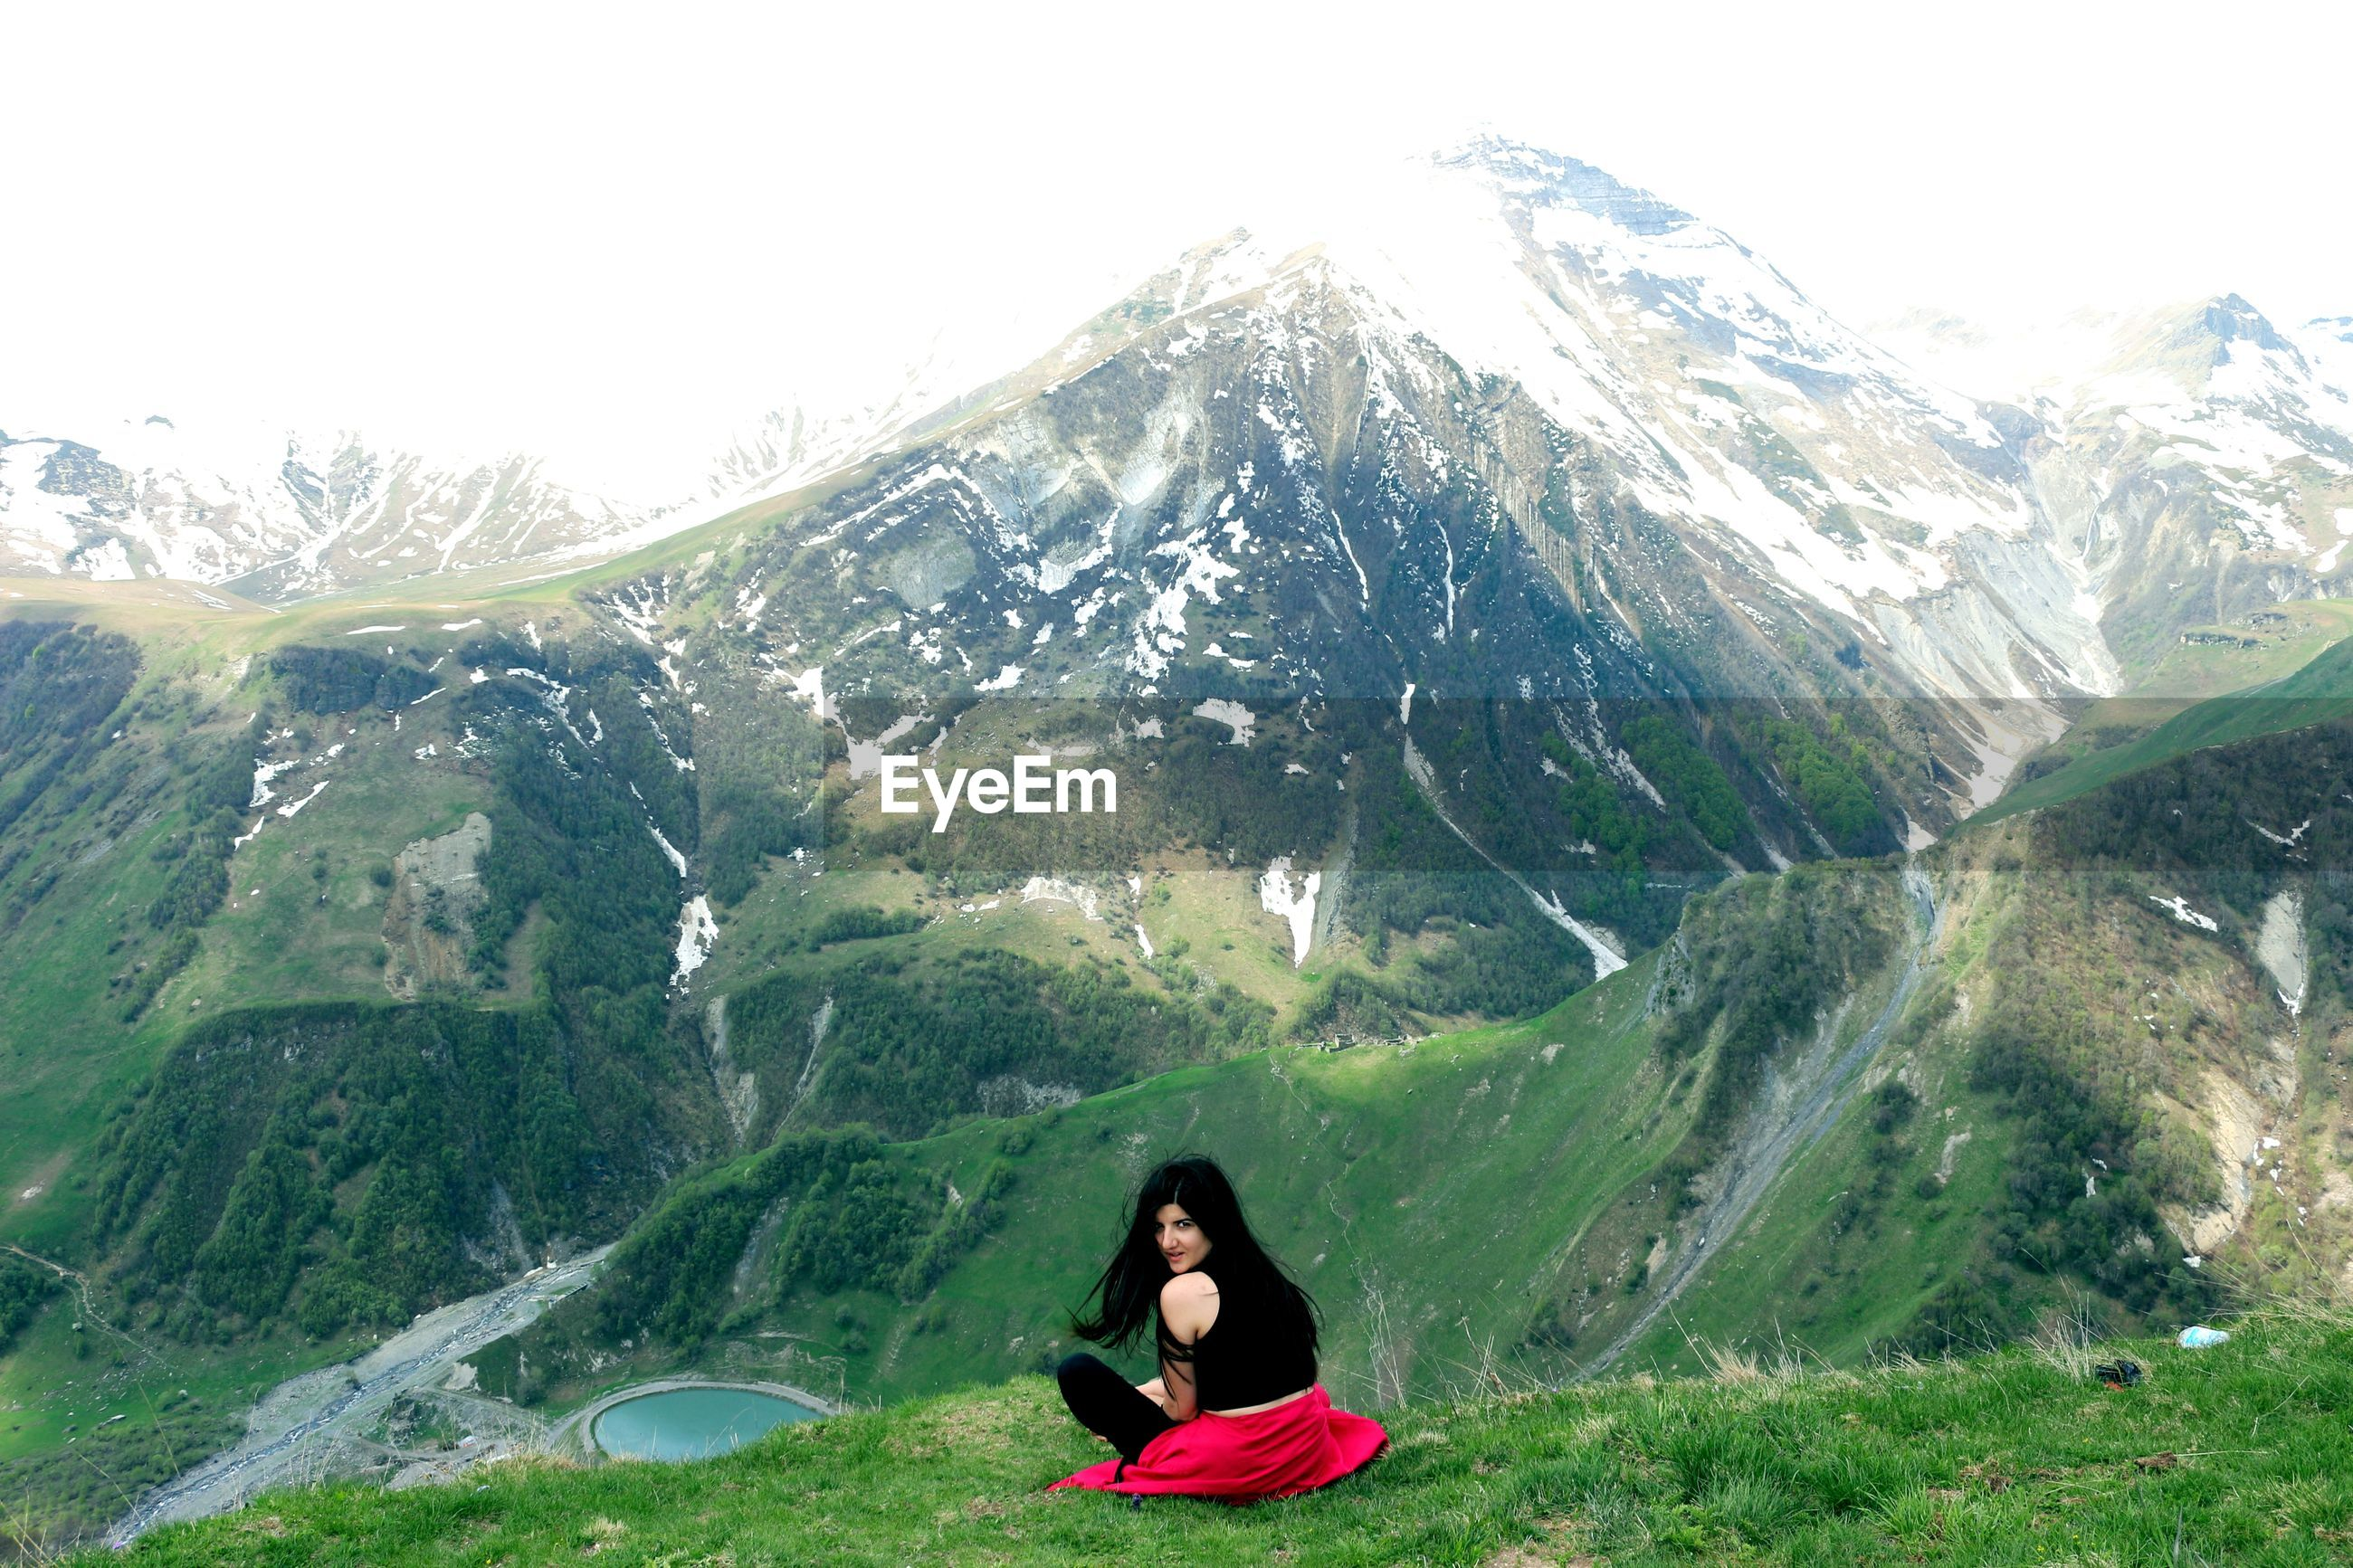 Portrait of woman sitting against mountain